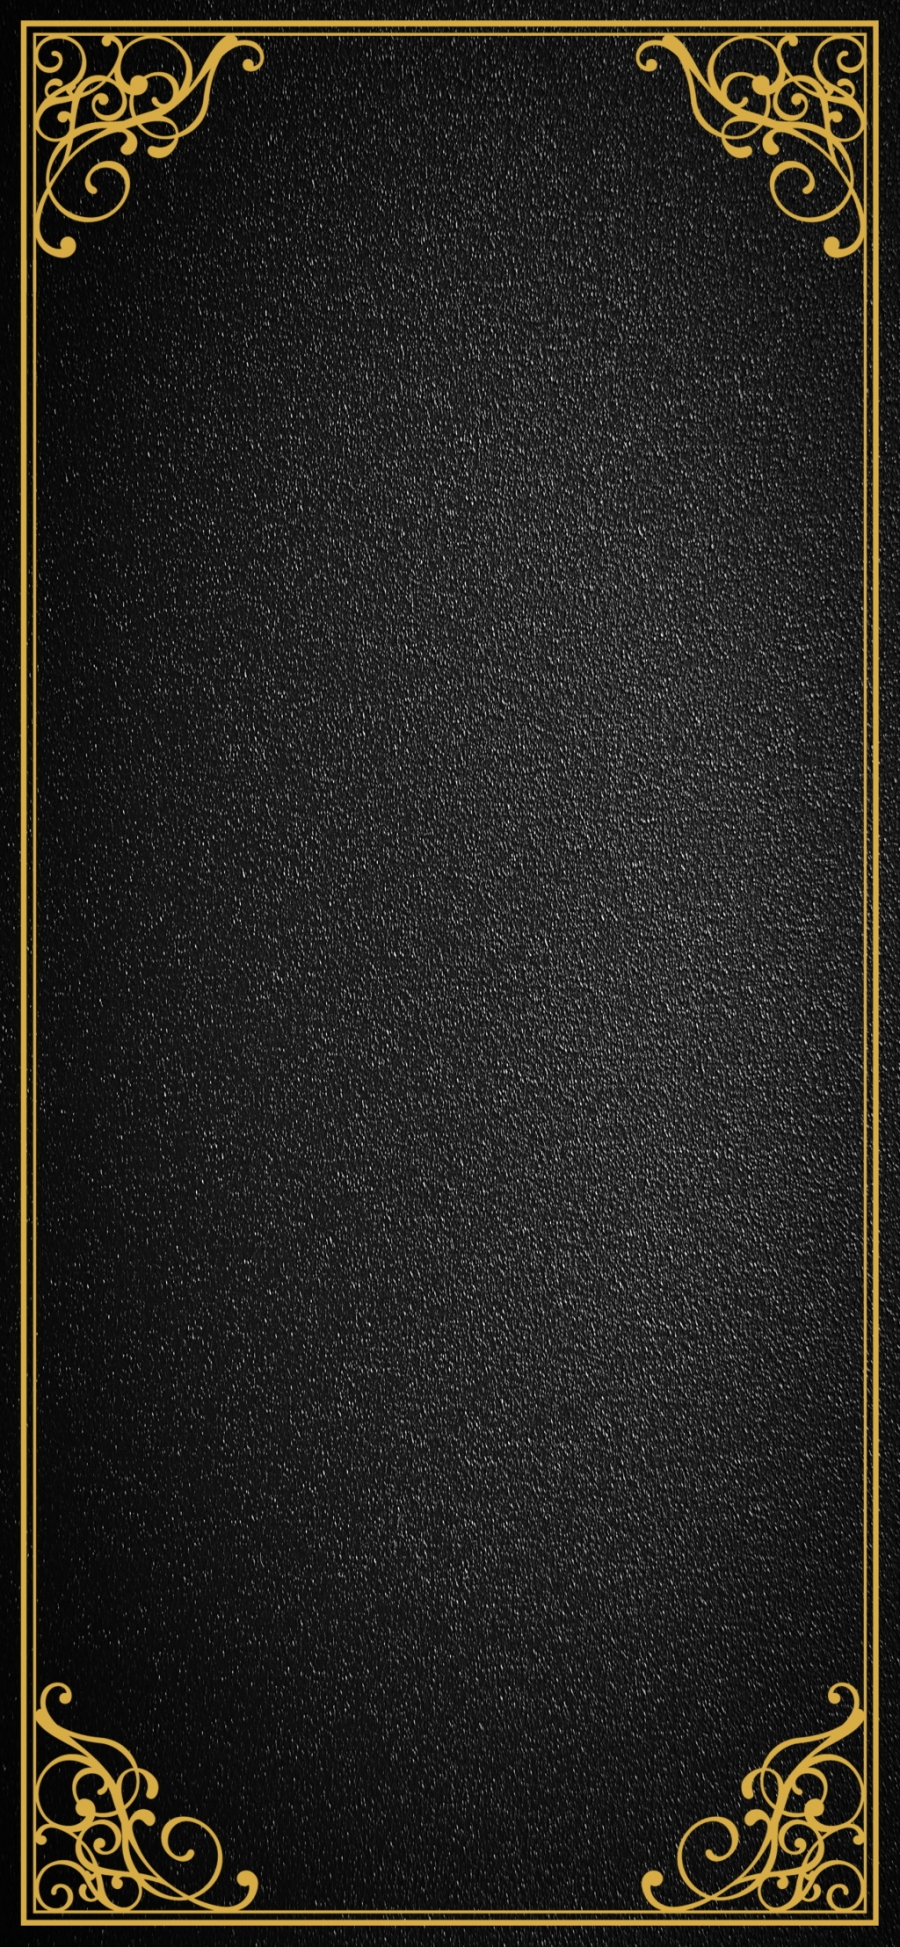 https pngtree com freebackground birthday invitation black gold style simple fashion background 1144006 html